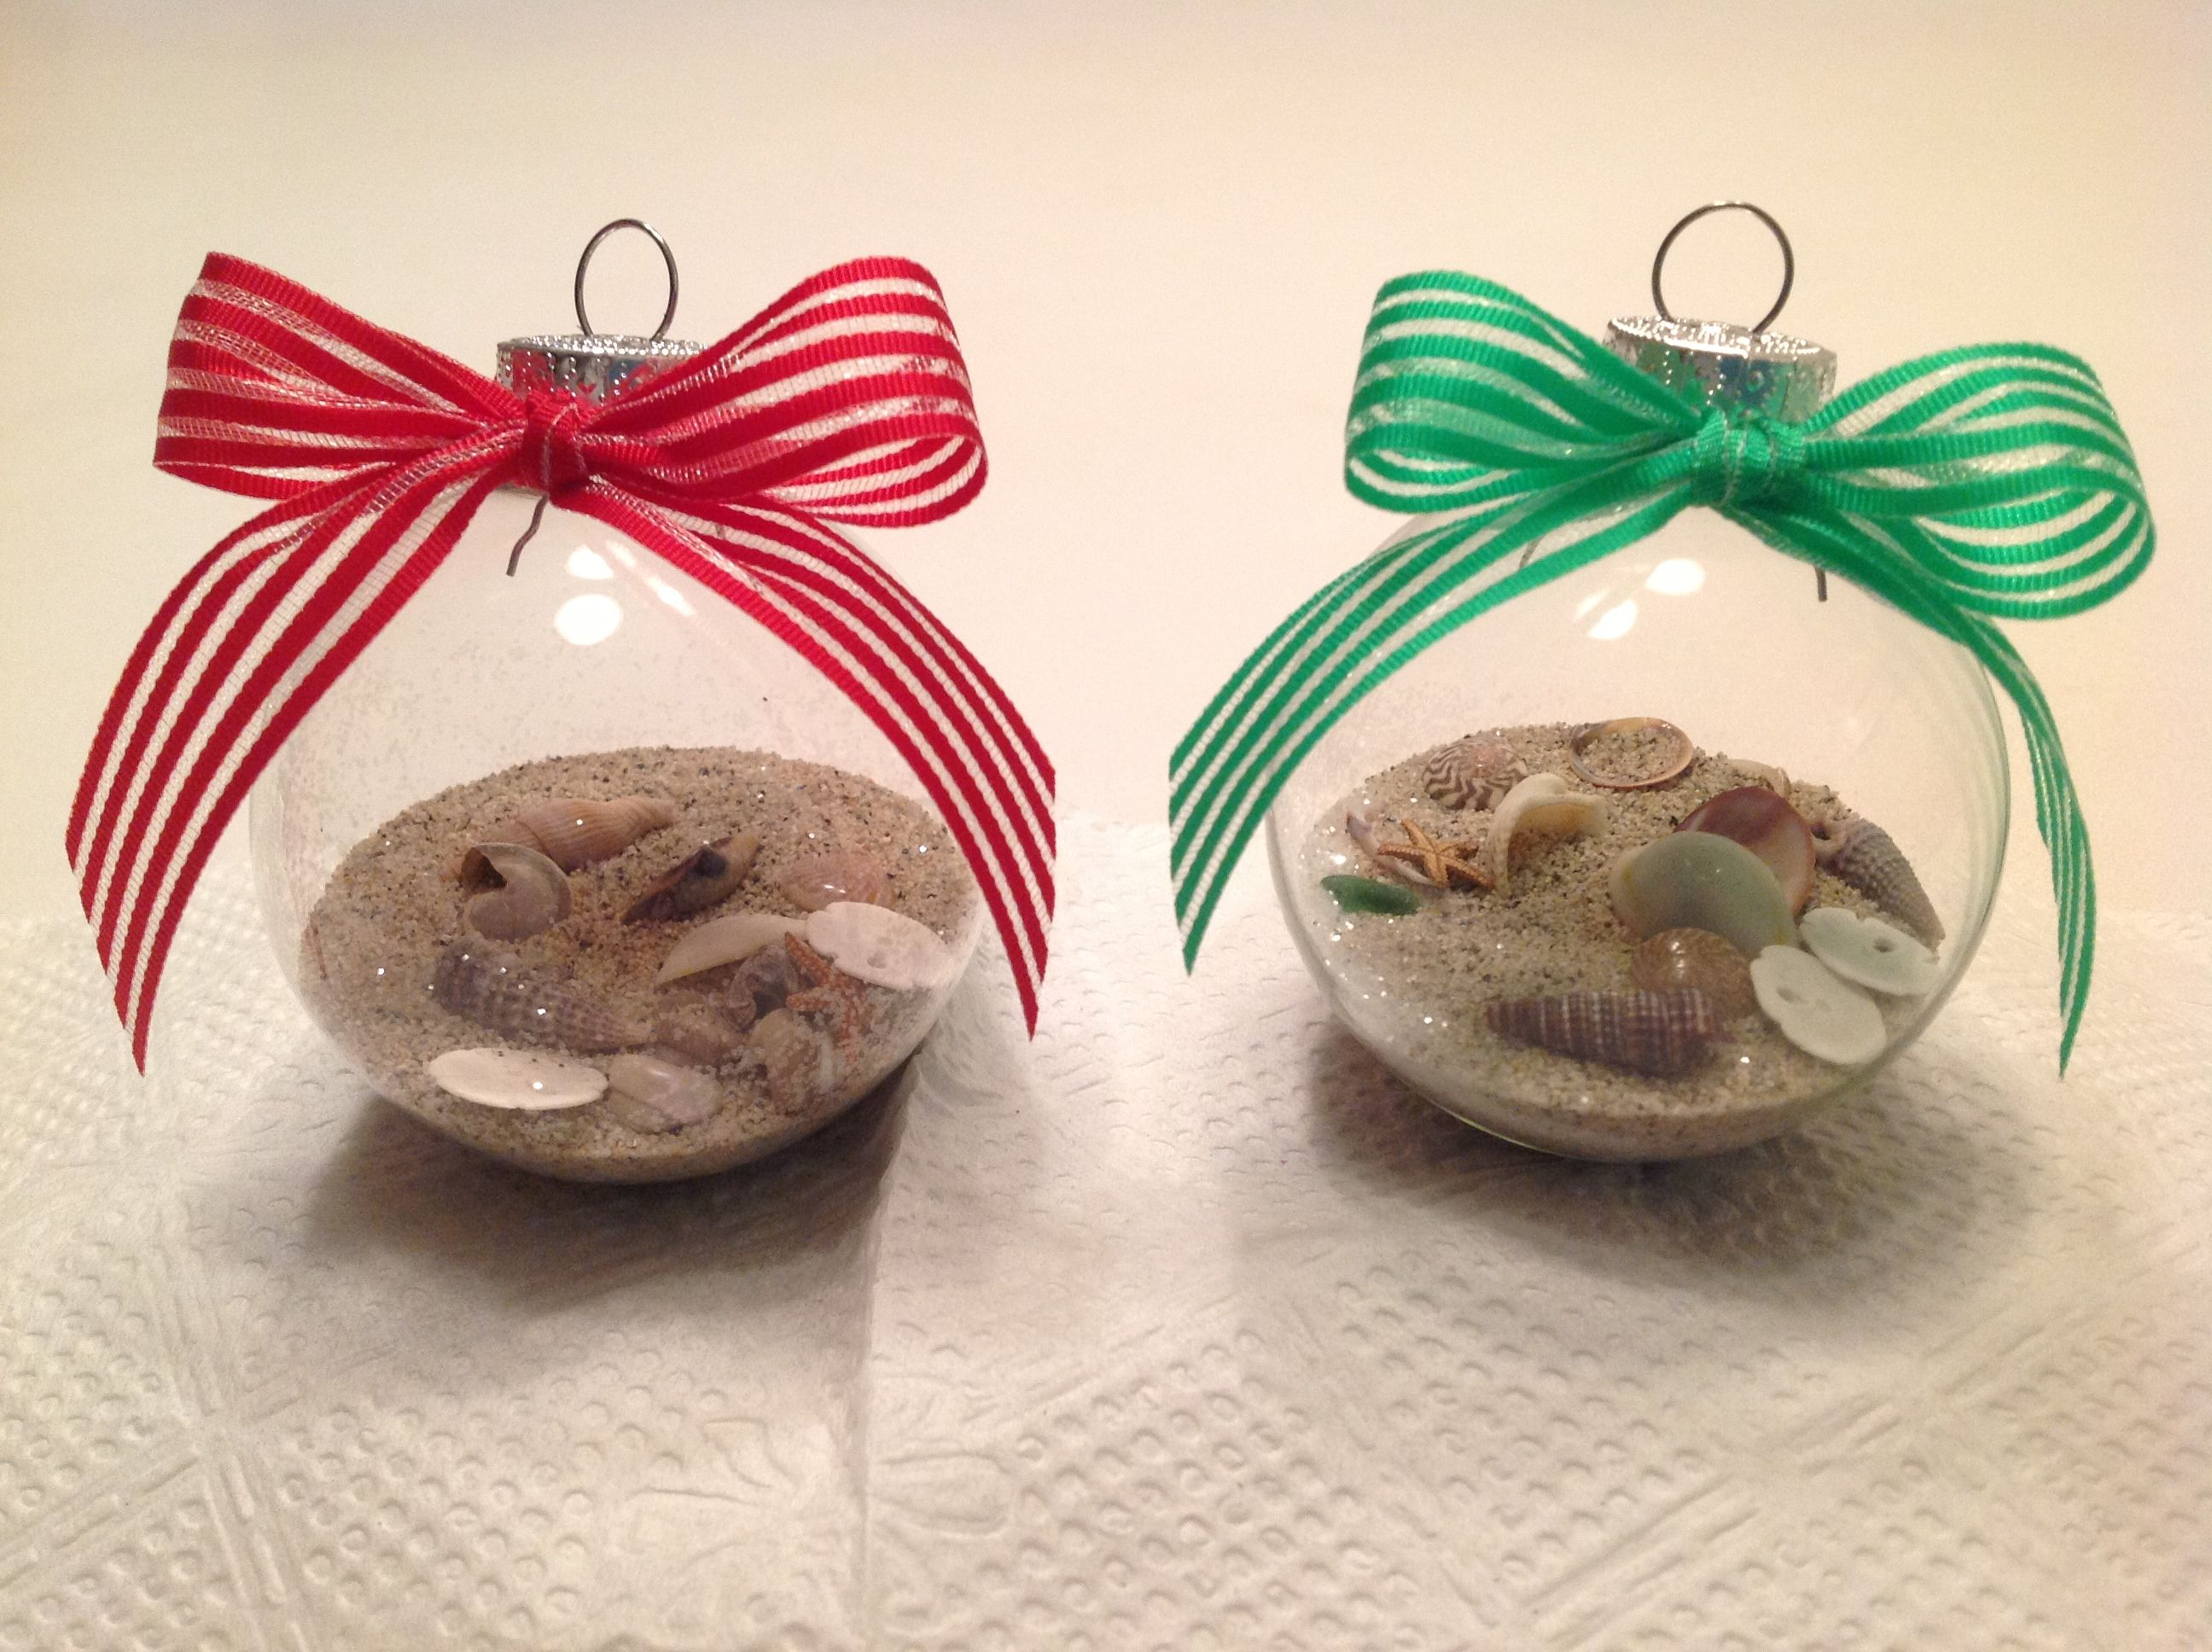 Christmas in July party favors. Christmas in australia